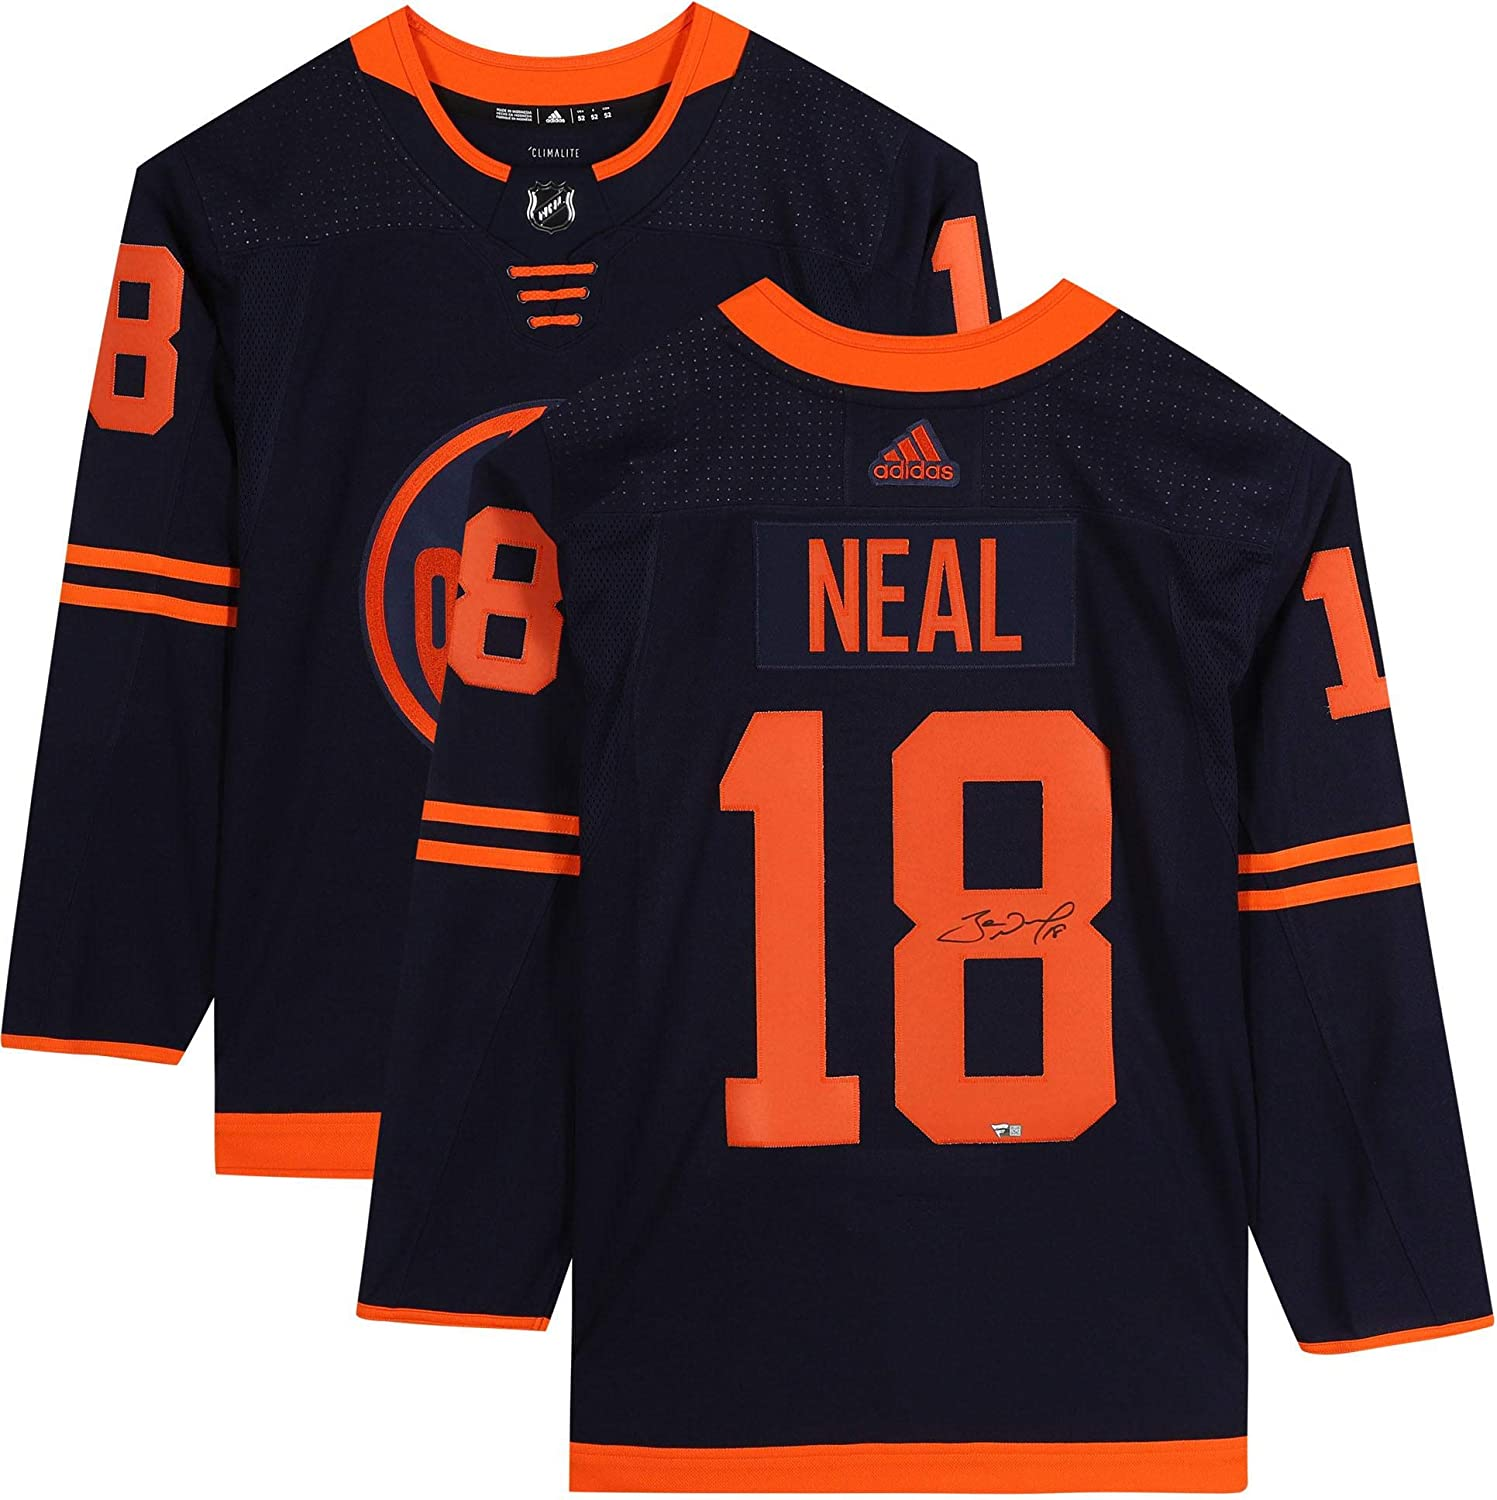 James Neal Edmonton Oilers Autographed Navy Alternate Adidas Authentic Jersey Autographed Nhl Jerseys At Amazon S Sports Collectibles Store